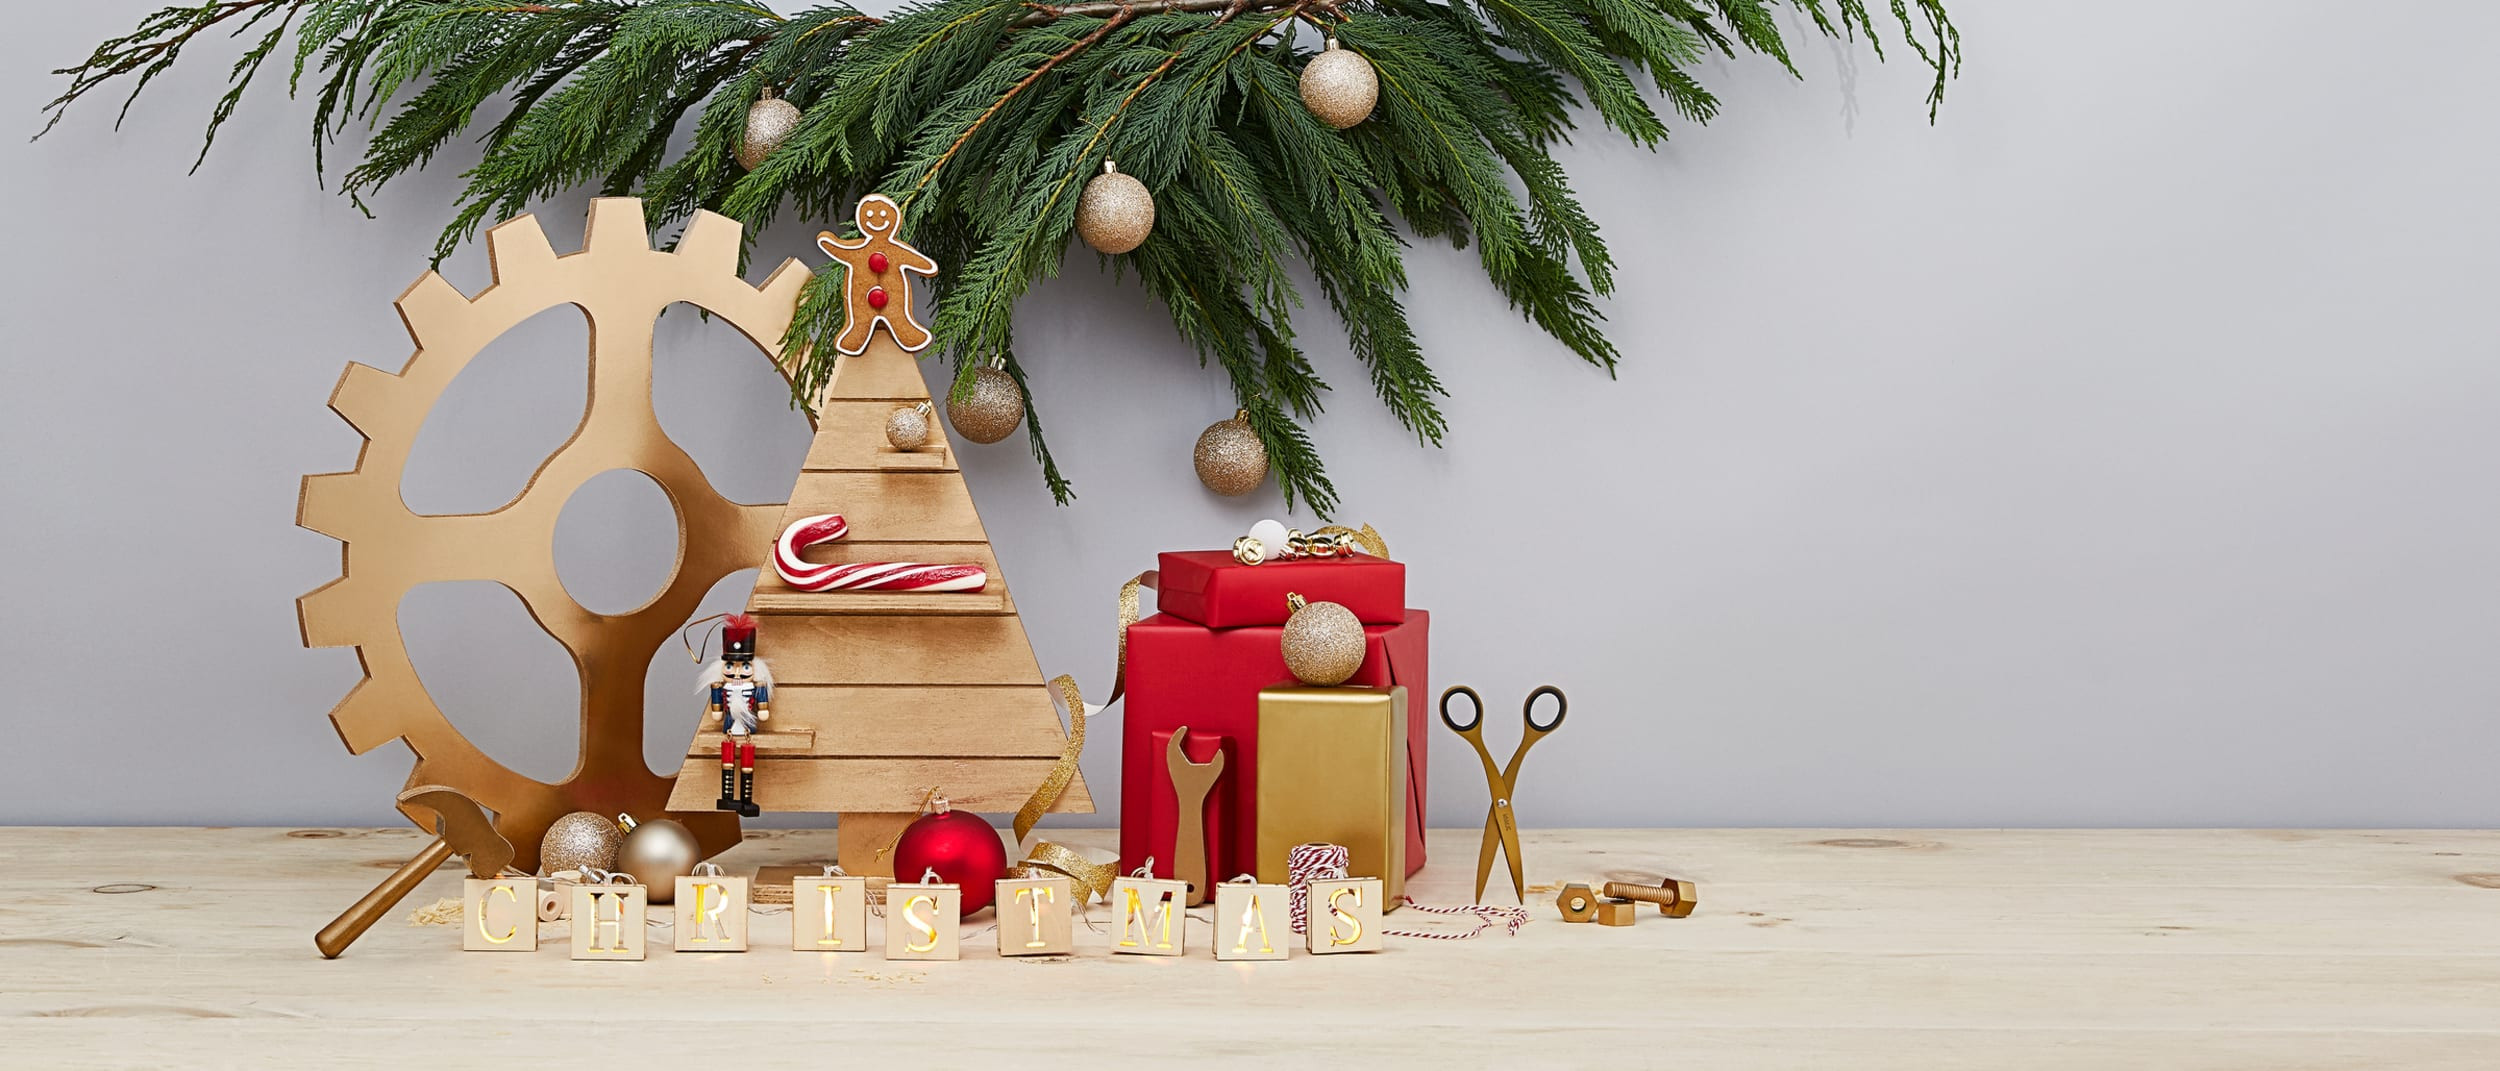 Christmas Story Deck The Halls  Story Deck the halls Christmas decoration ideas for any